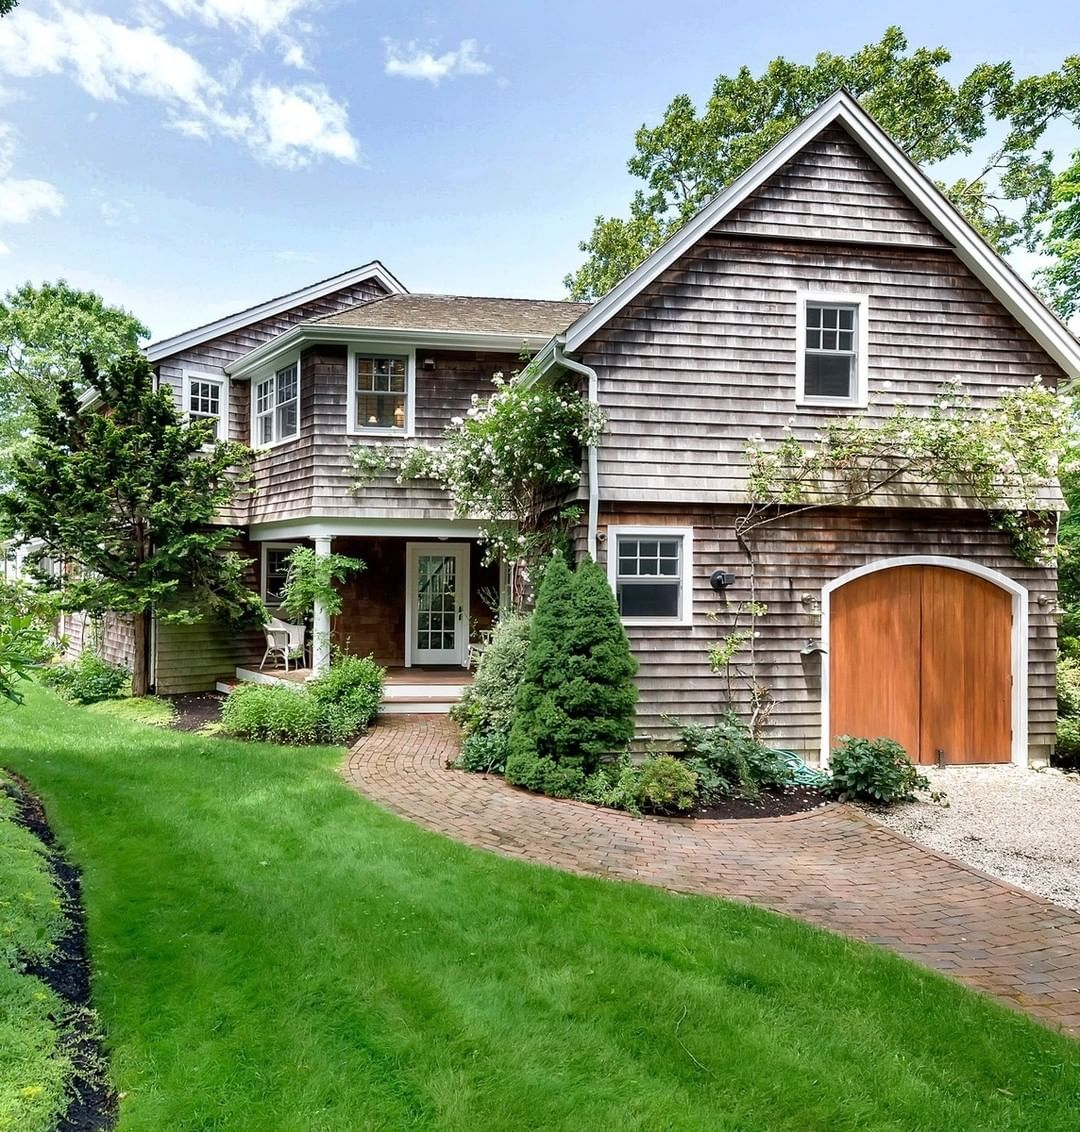 East Hampton Homes: Out East On Instagram: €�The Views Of The Harbor From This